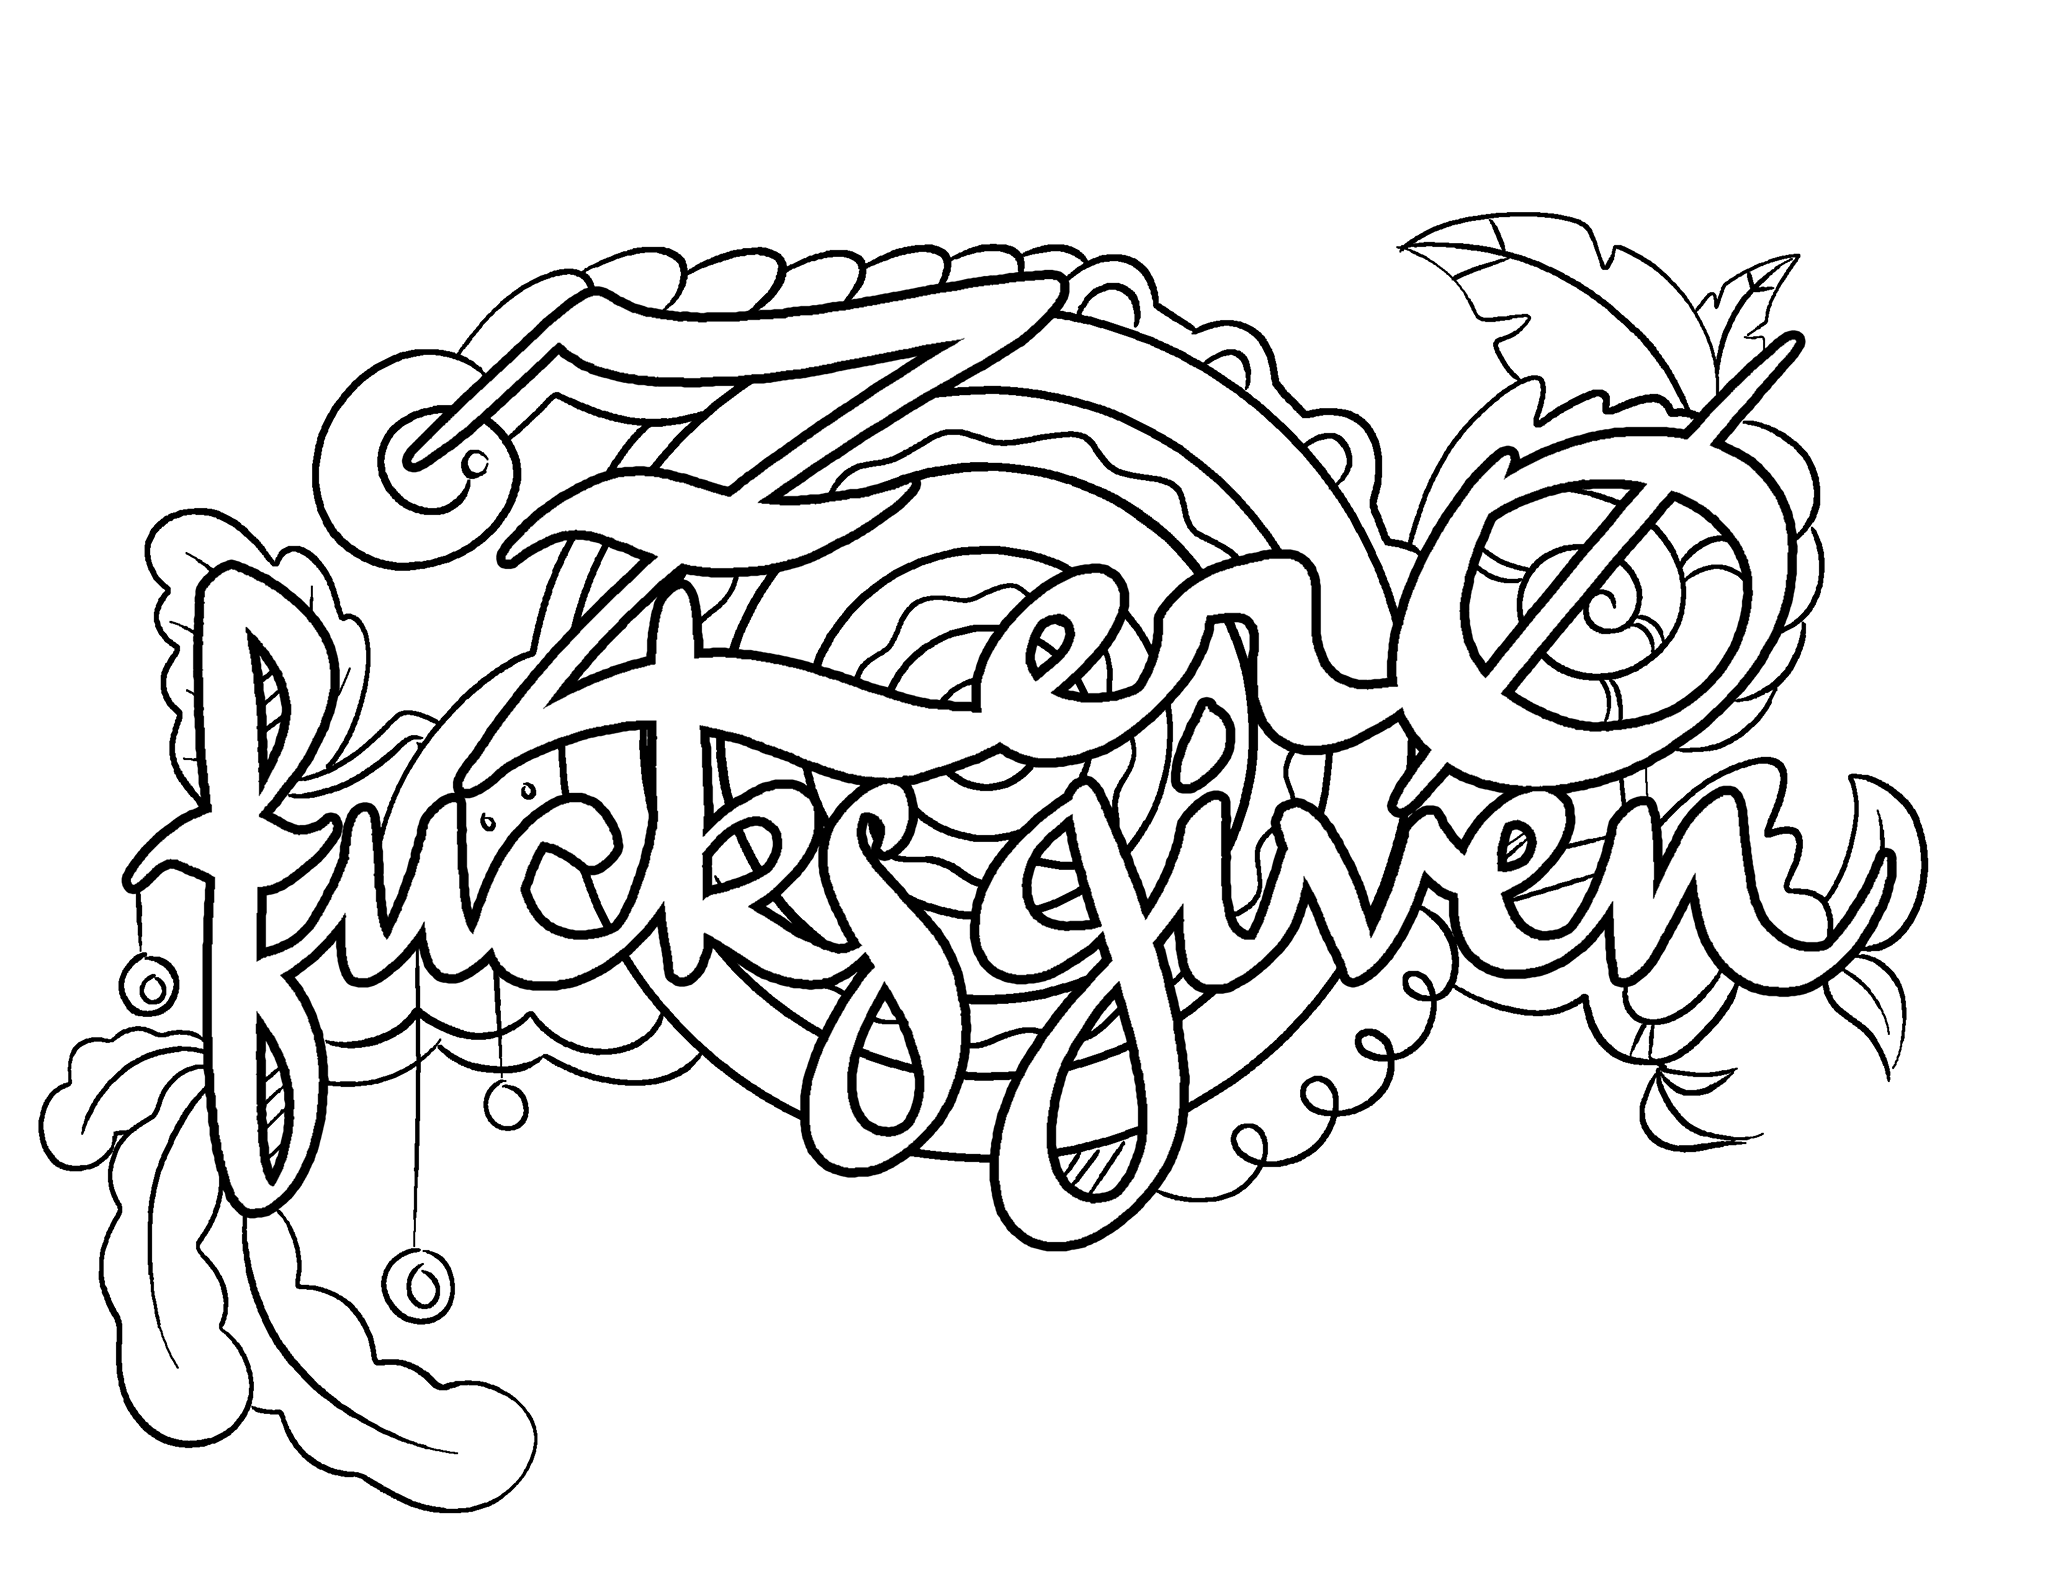 Zero Fucks Given Coloring Page By Colorful Language © 2015